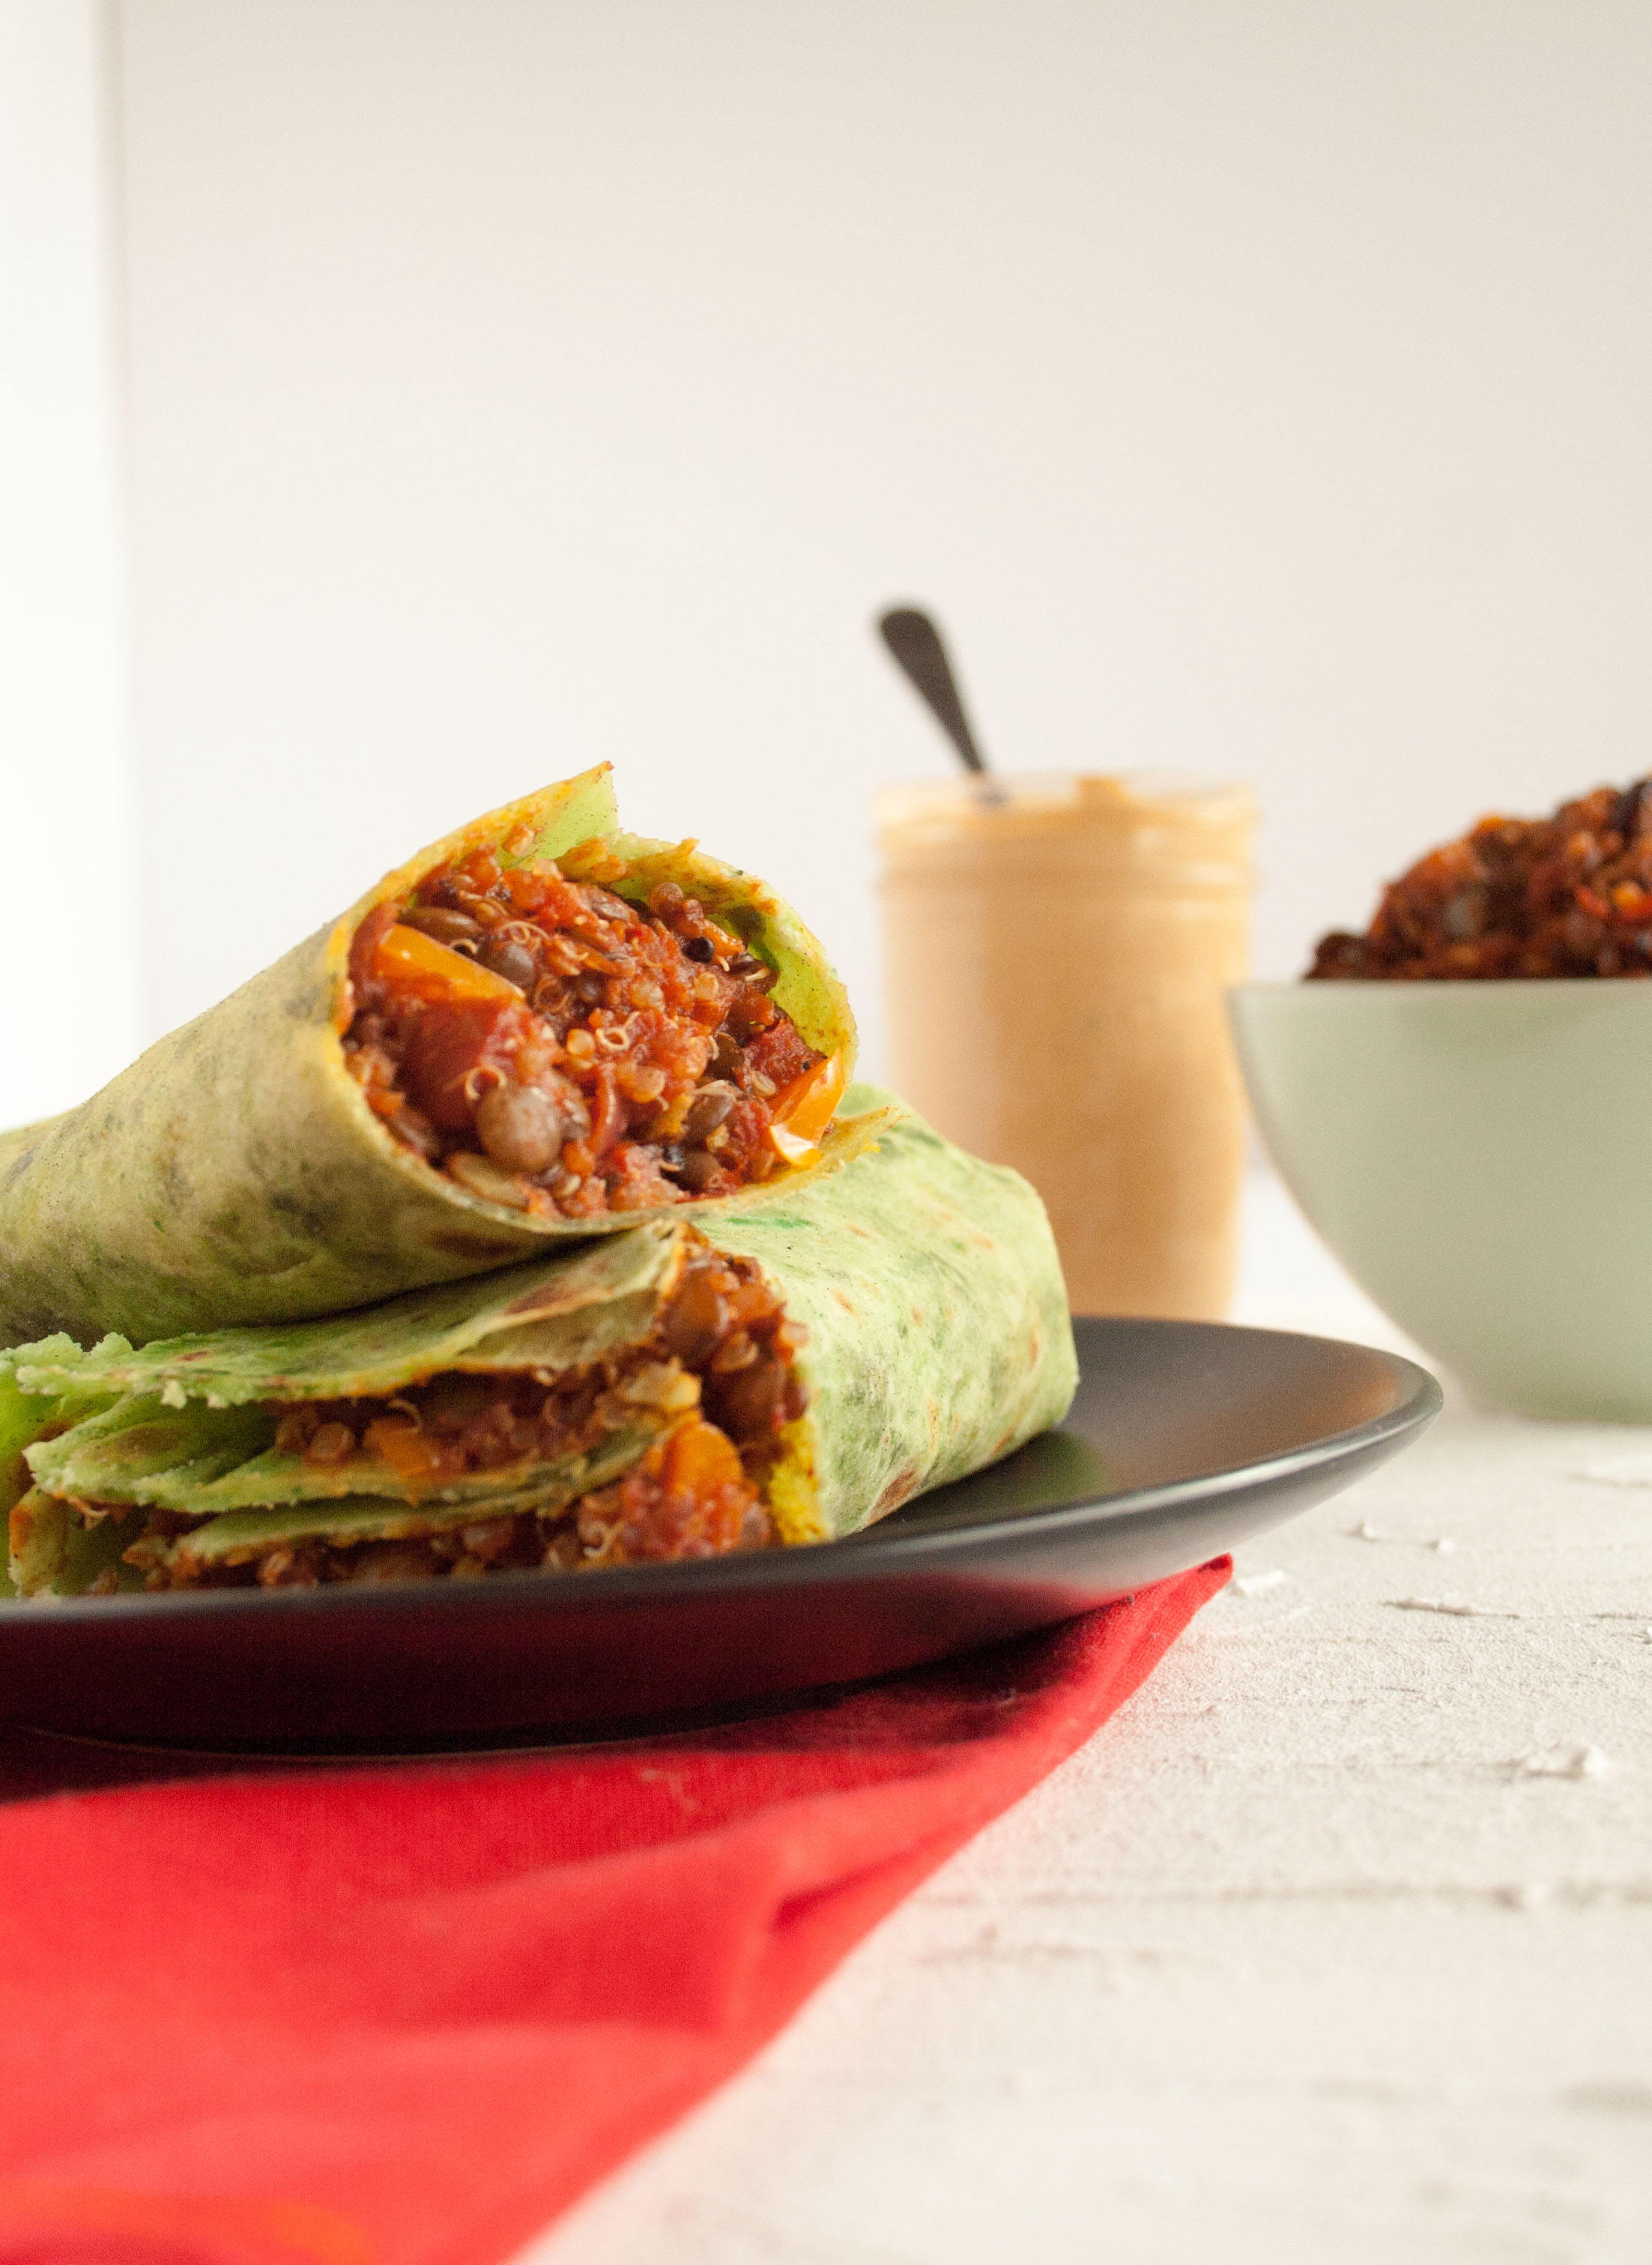 Lentil Quinoa Burritos with Chipotle Sauce with ingredients in the background.